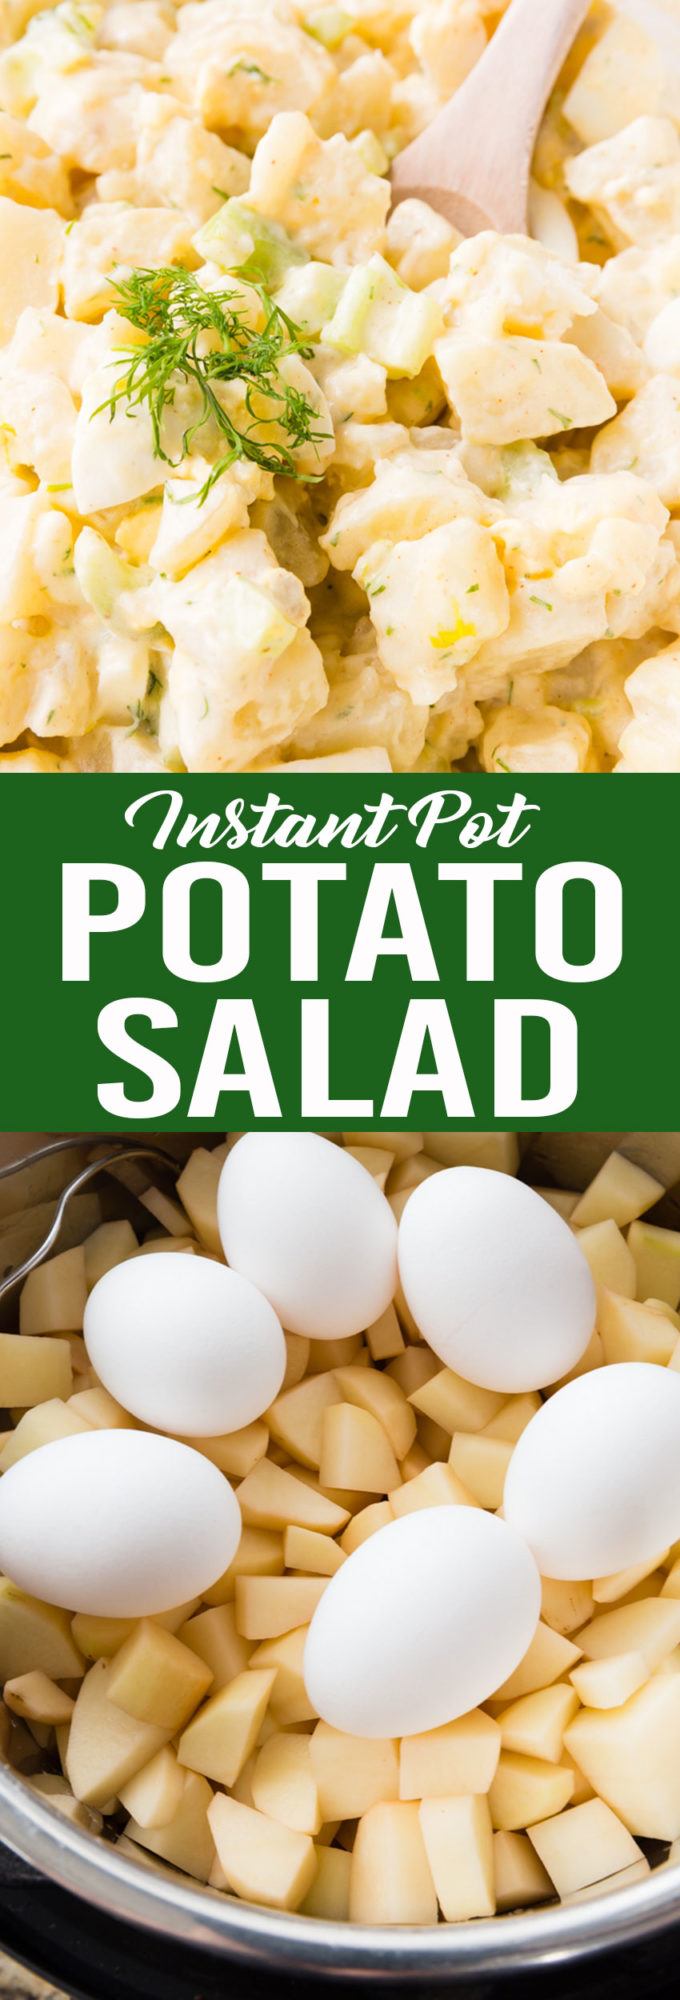 Tender but firm potatoes, perfectly cooked eggs, and a delicious potato salad!